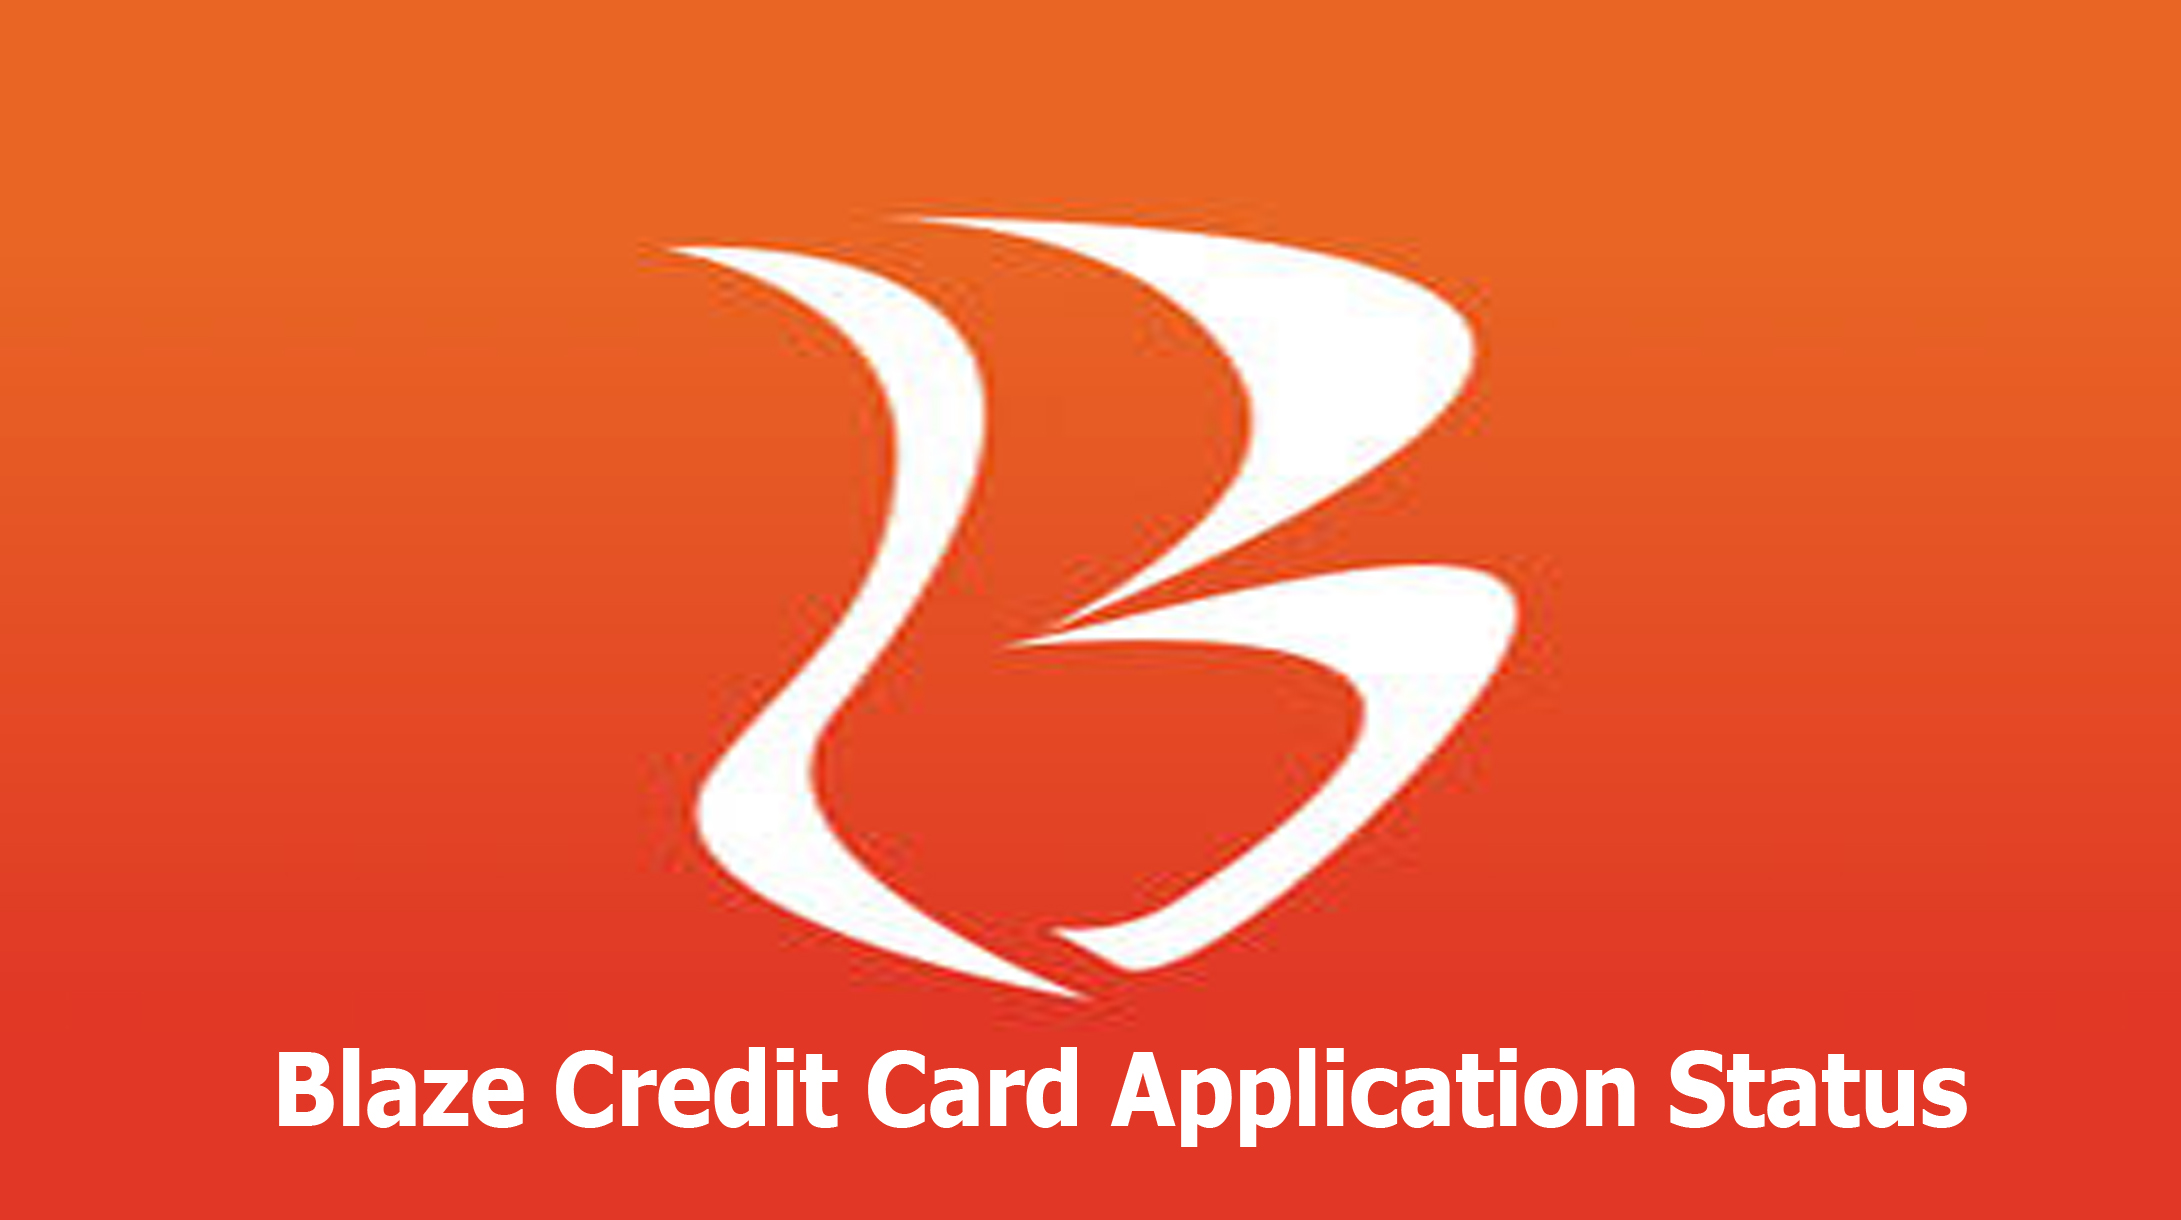 Blaze Credit Card Application Status - Blaze Credit Card Application